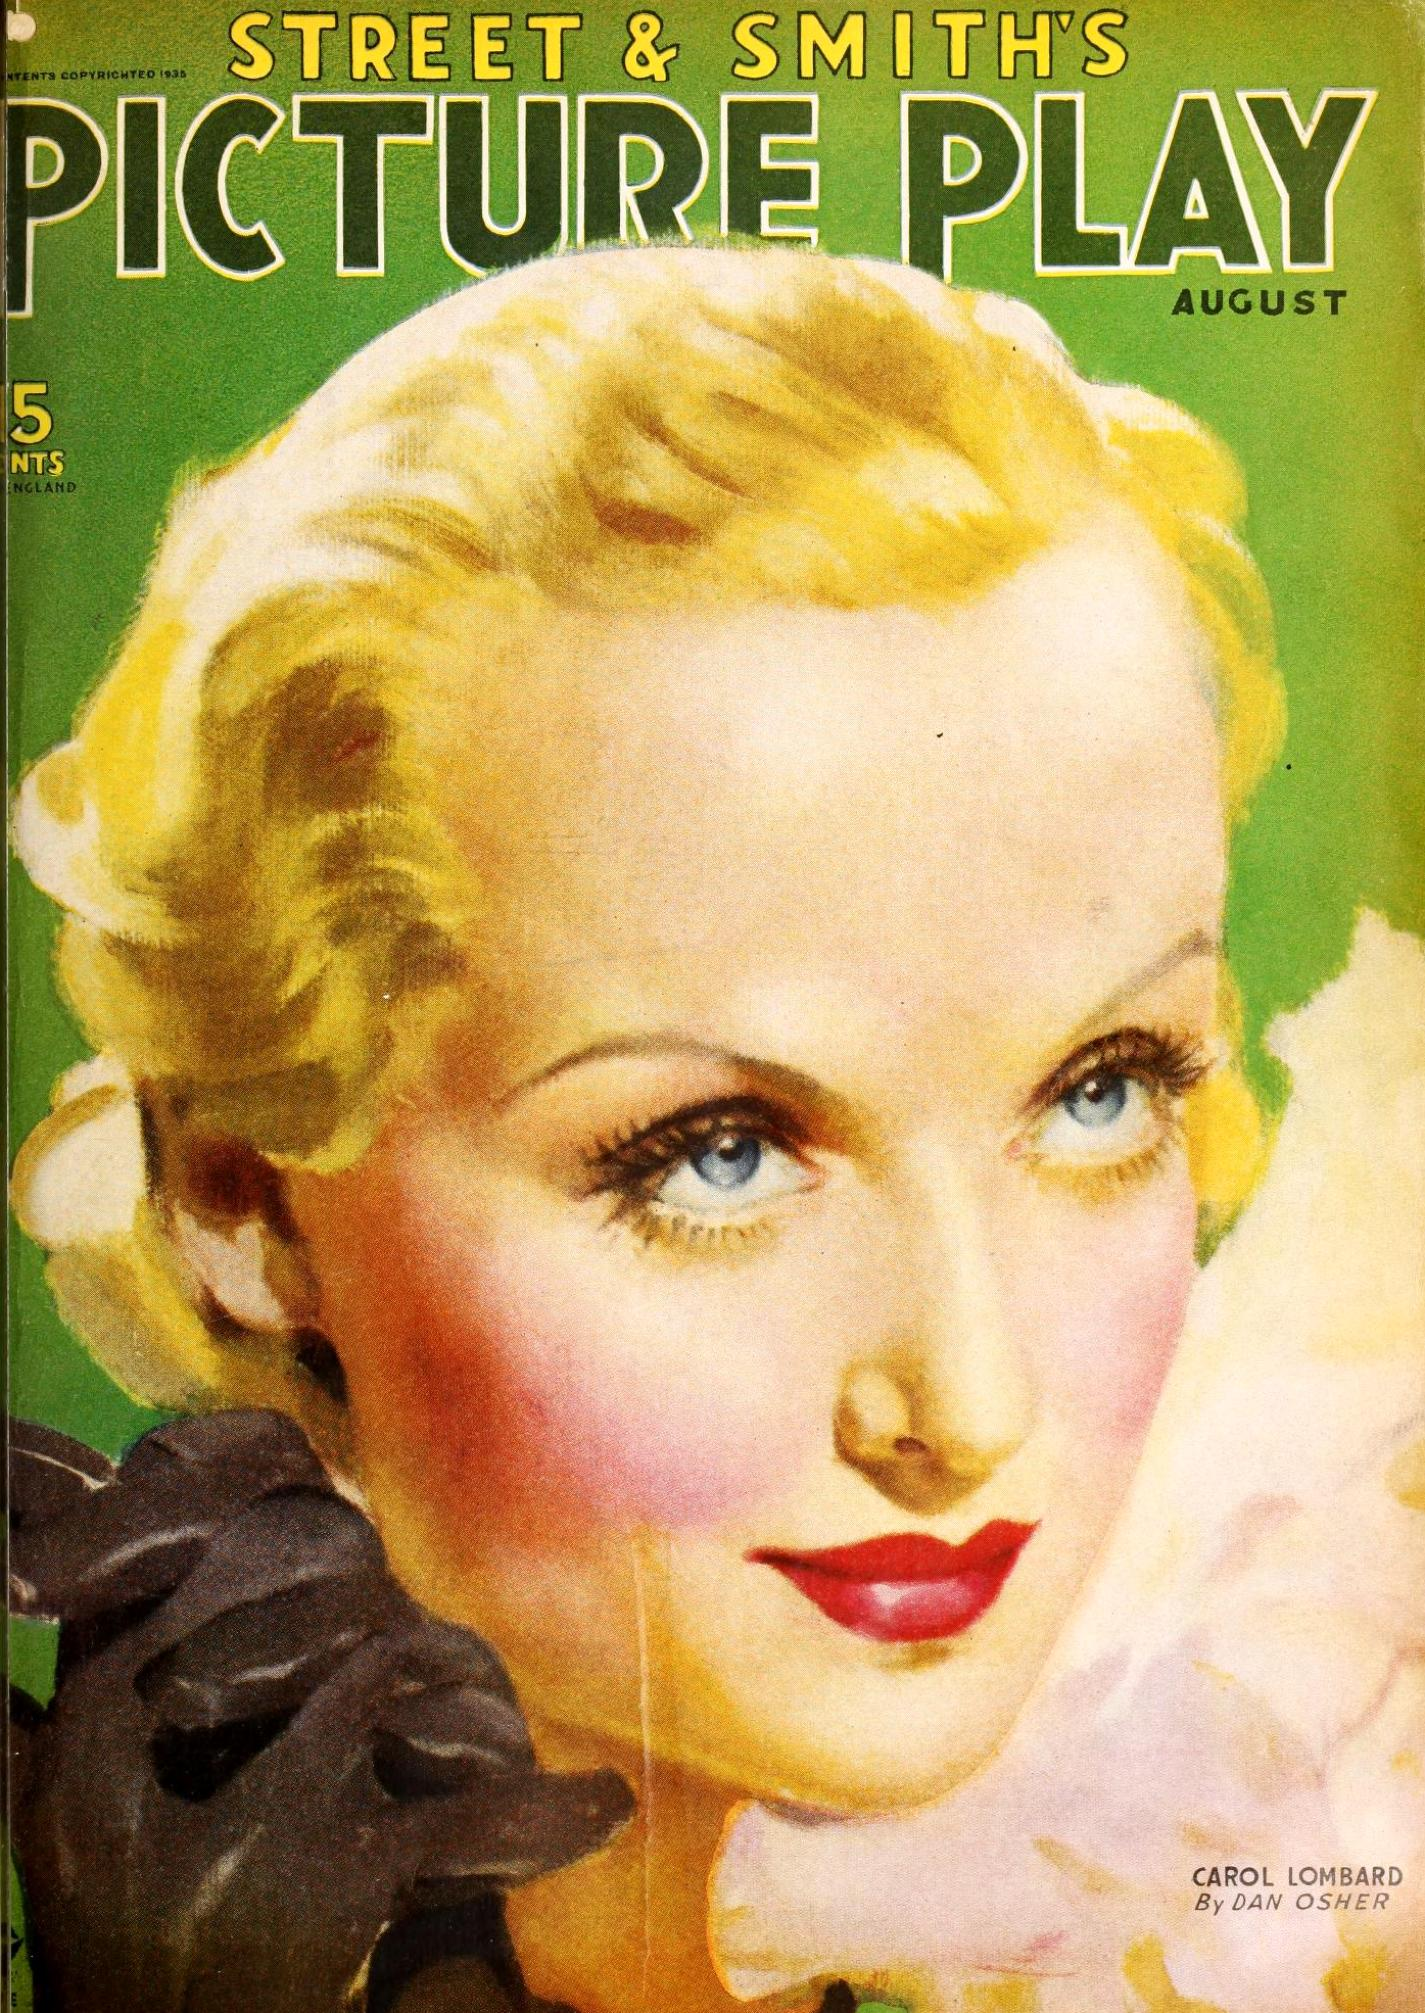 carole lombard picture play august 1935 cover large